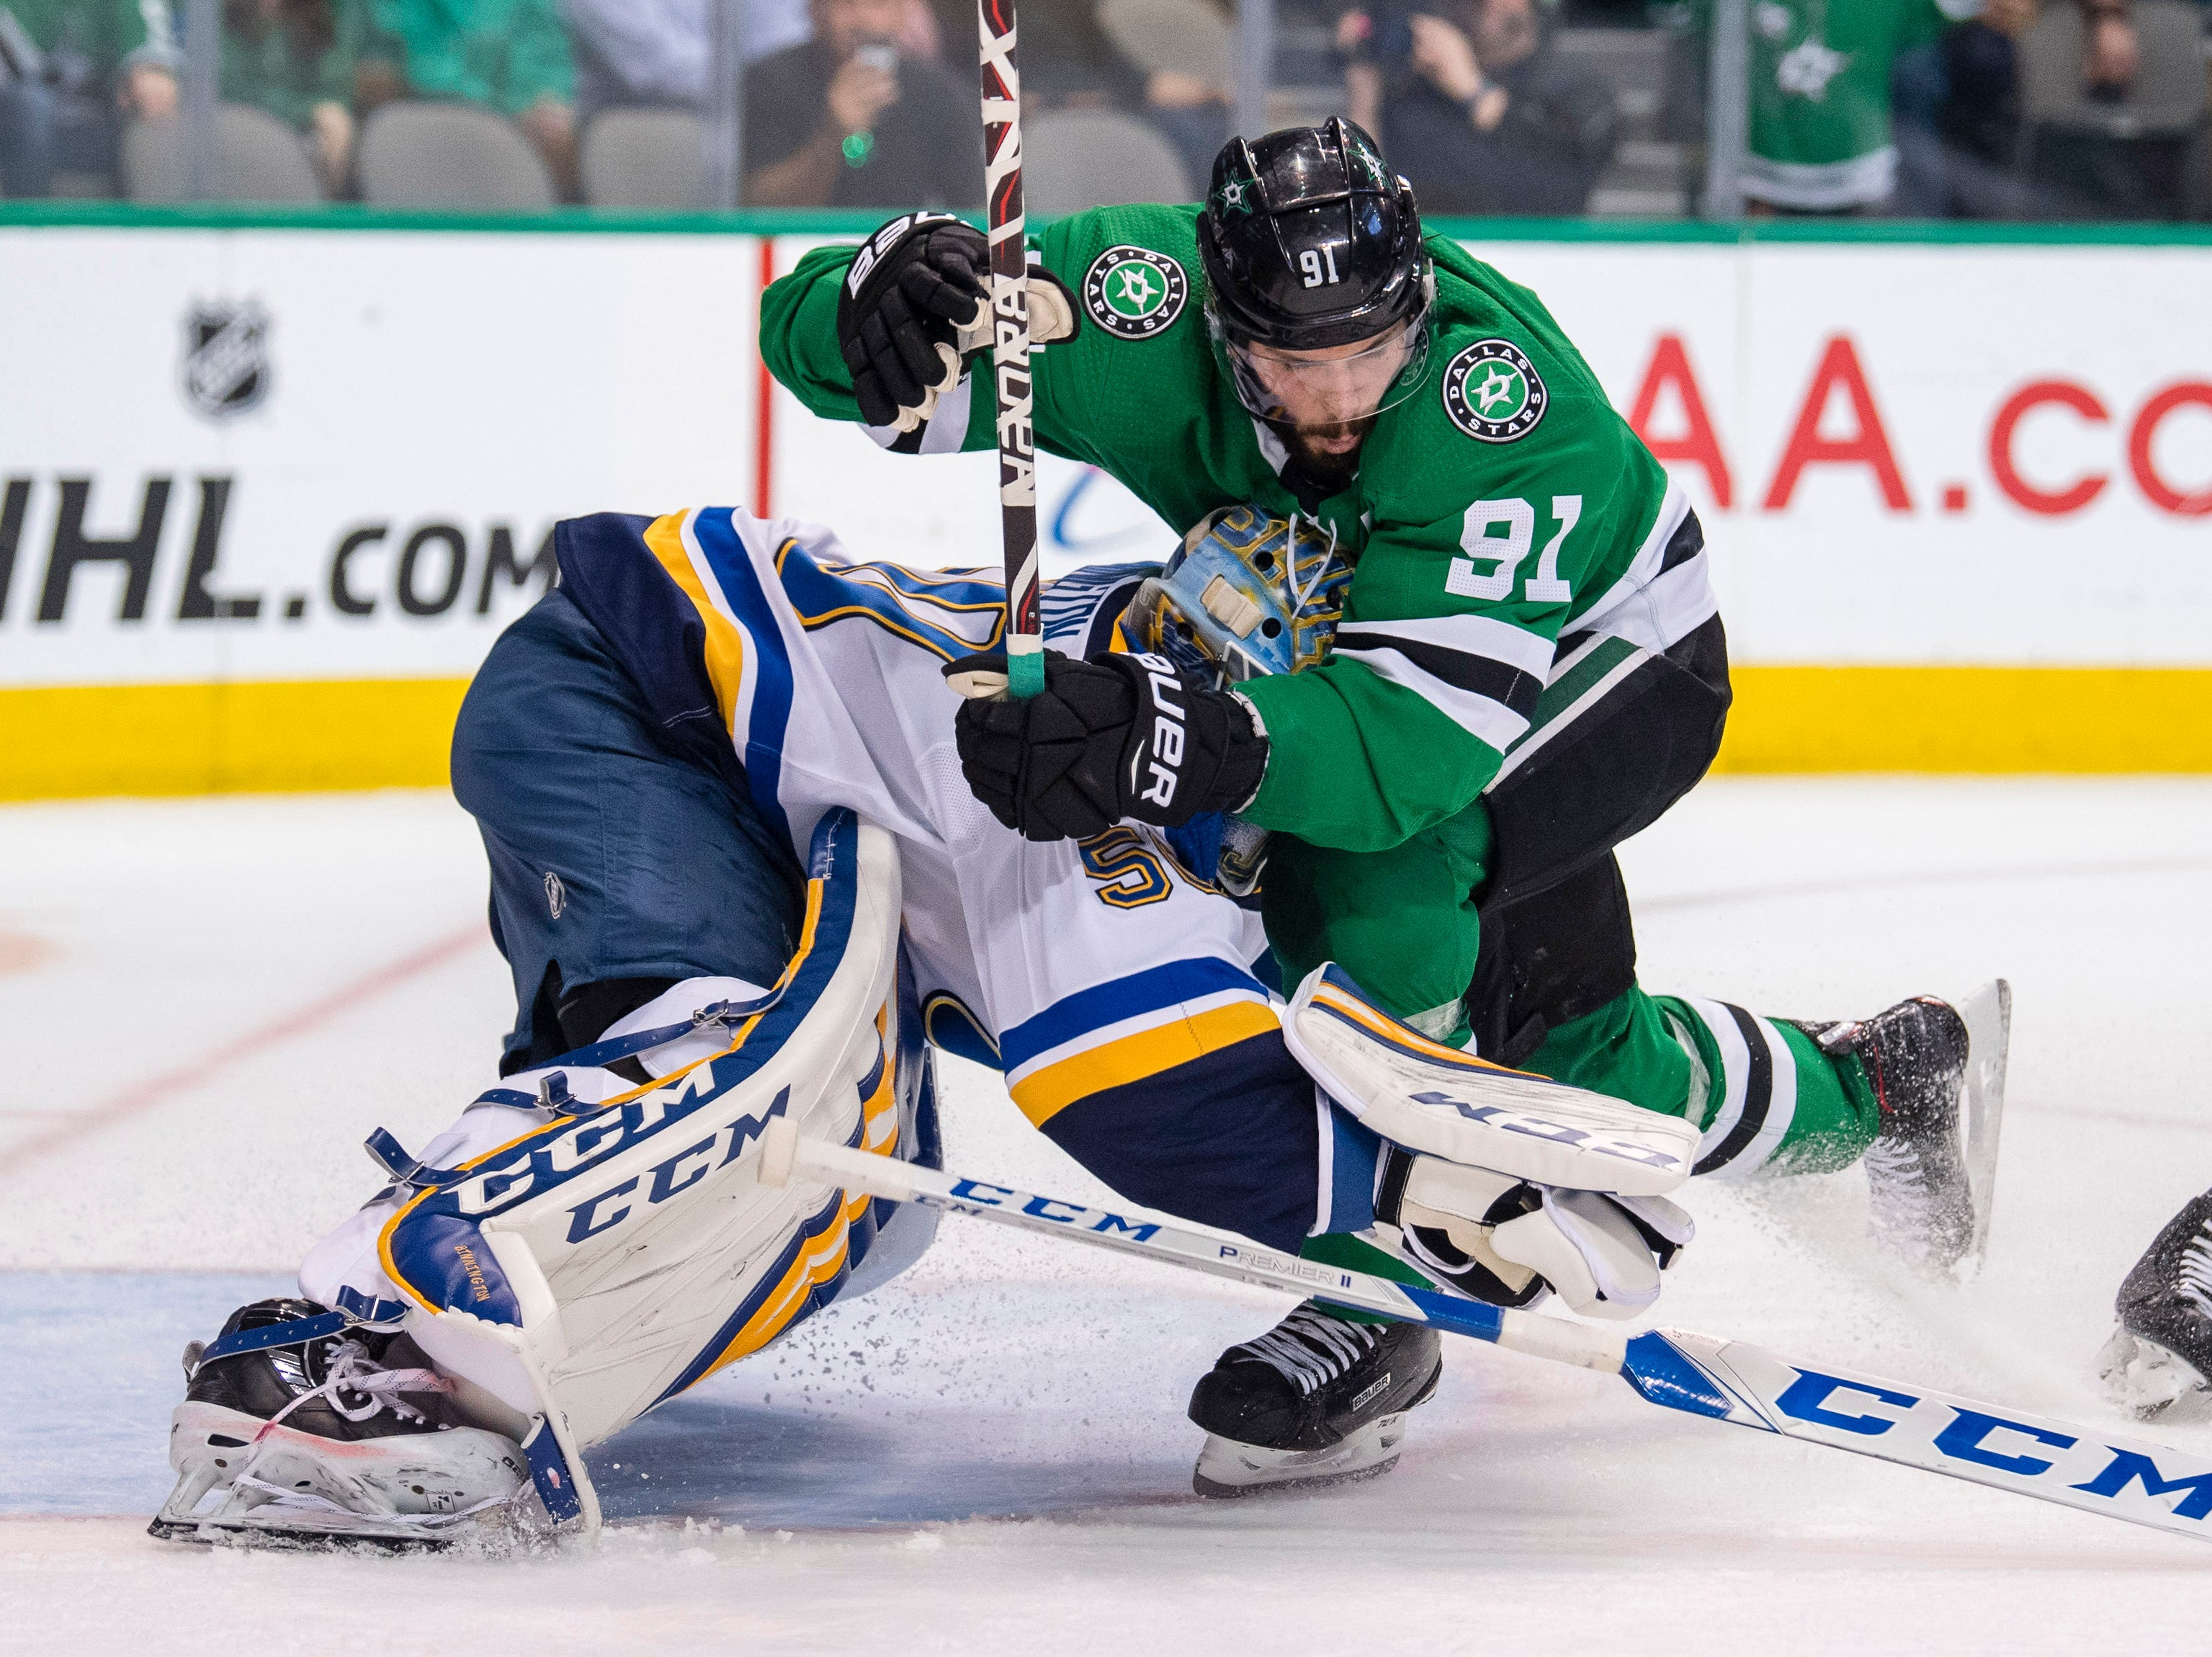 Second round: Dallas Stars center Tyler Seguin crashes into St. Louis Blues goaltender Jordan Binnington during the second period of Game 4.